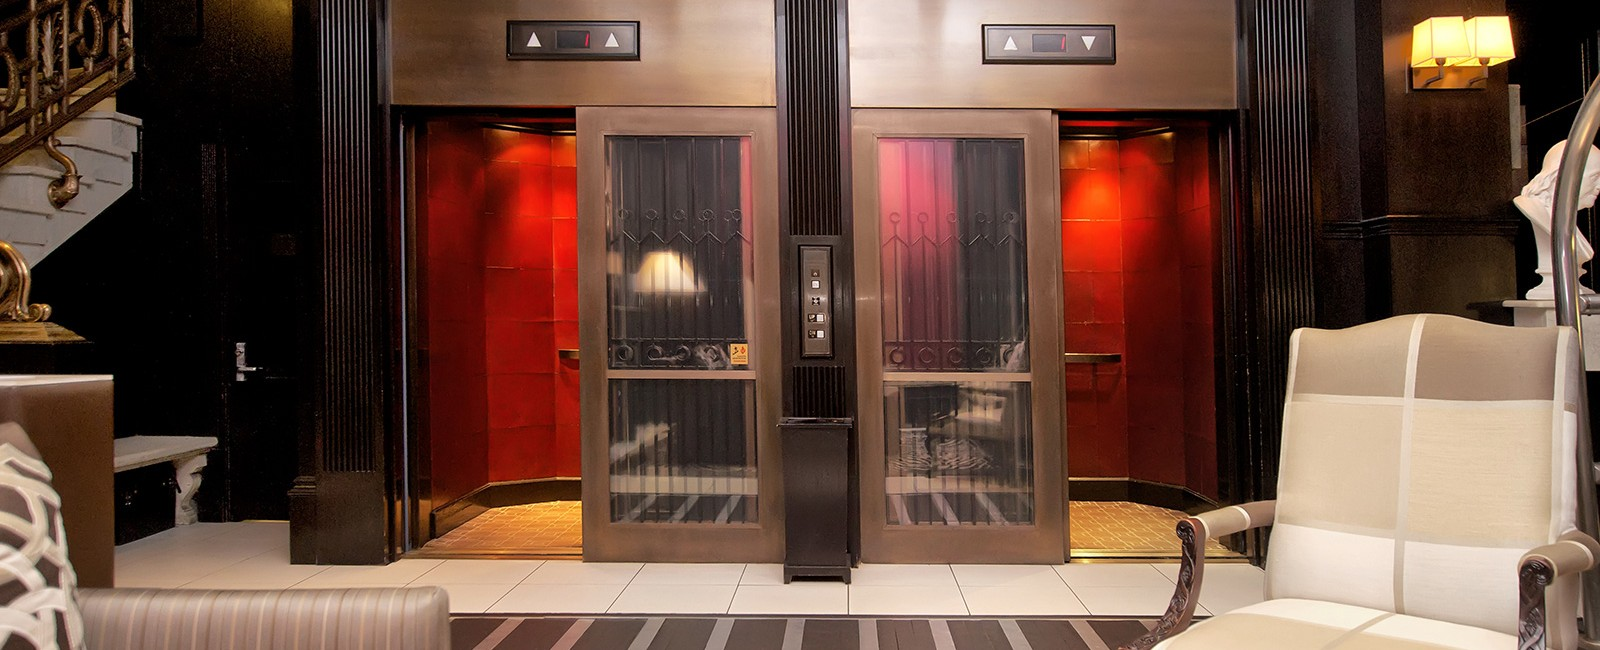 Hotel lobby's historic elevators that is an original feature of the building dating back to 1903